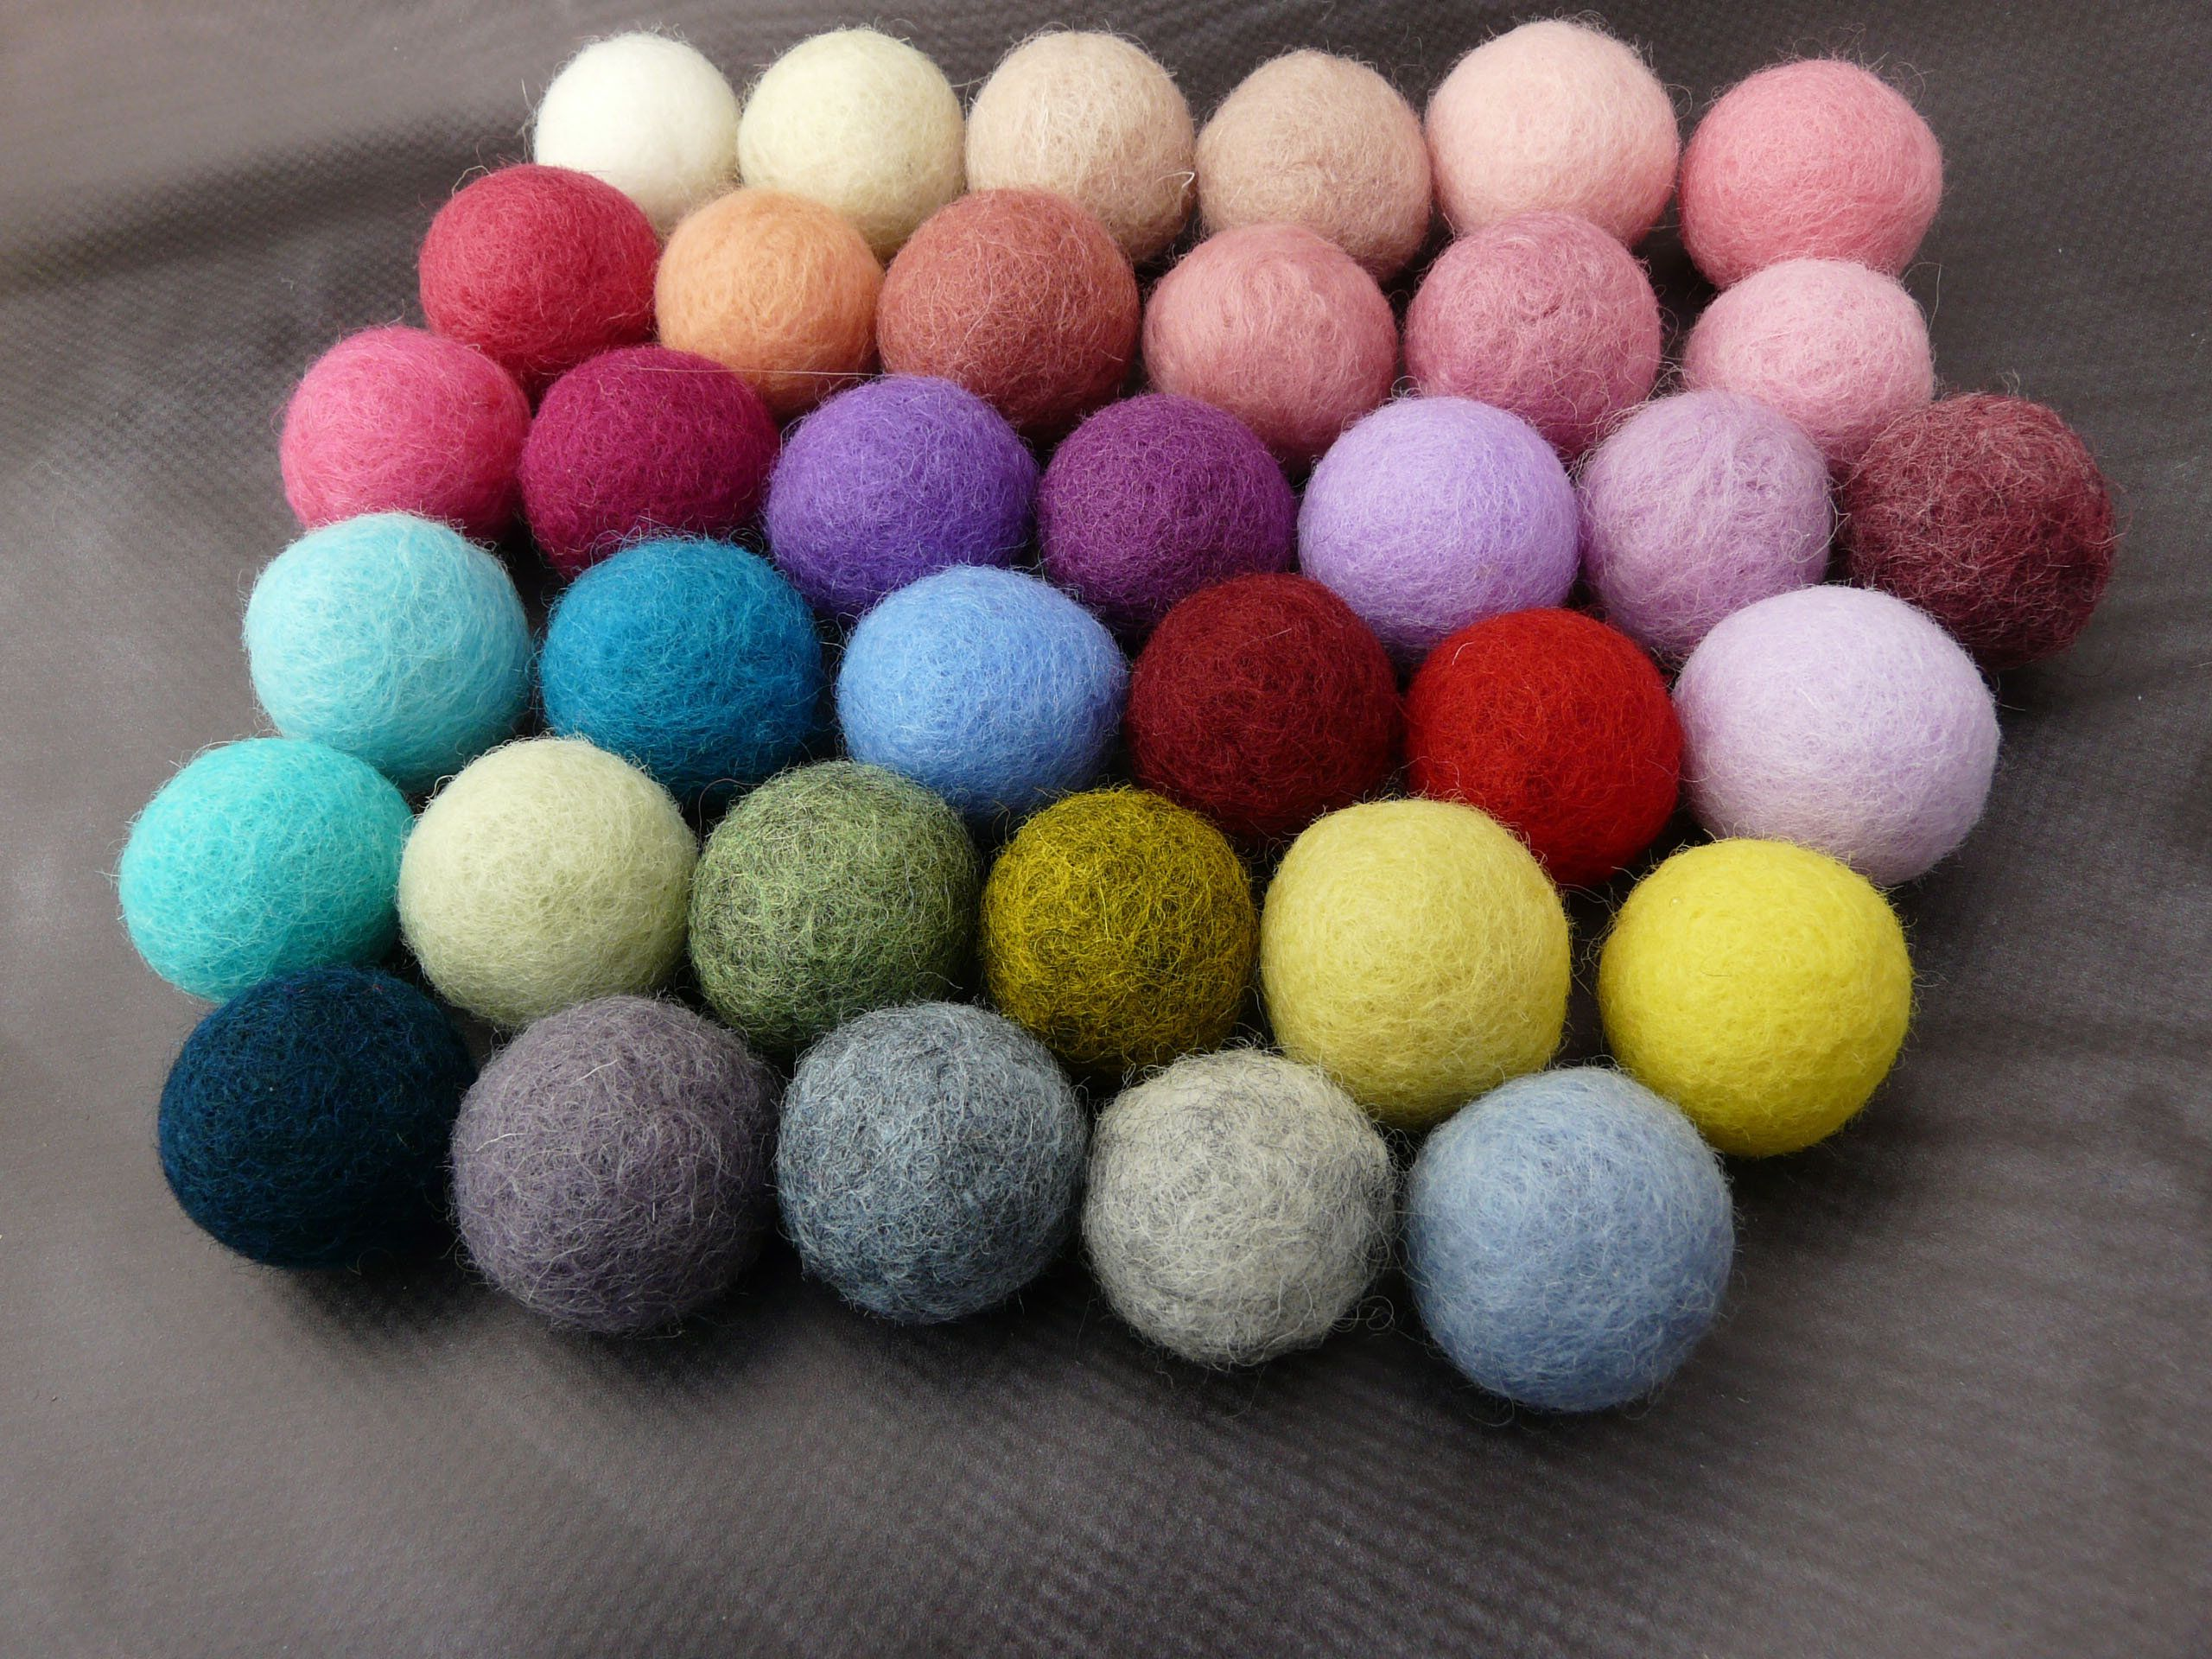 How To Make Felt Balls At Home 12 Crafty Tutorials Guide Patterns